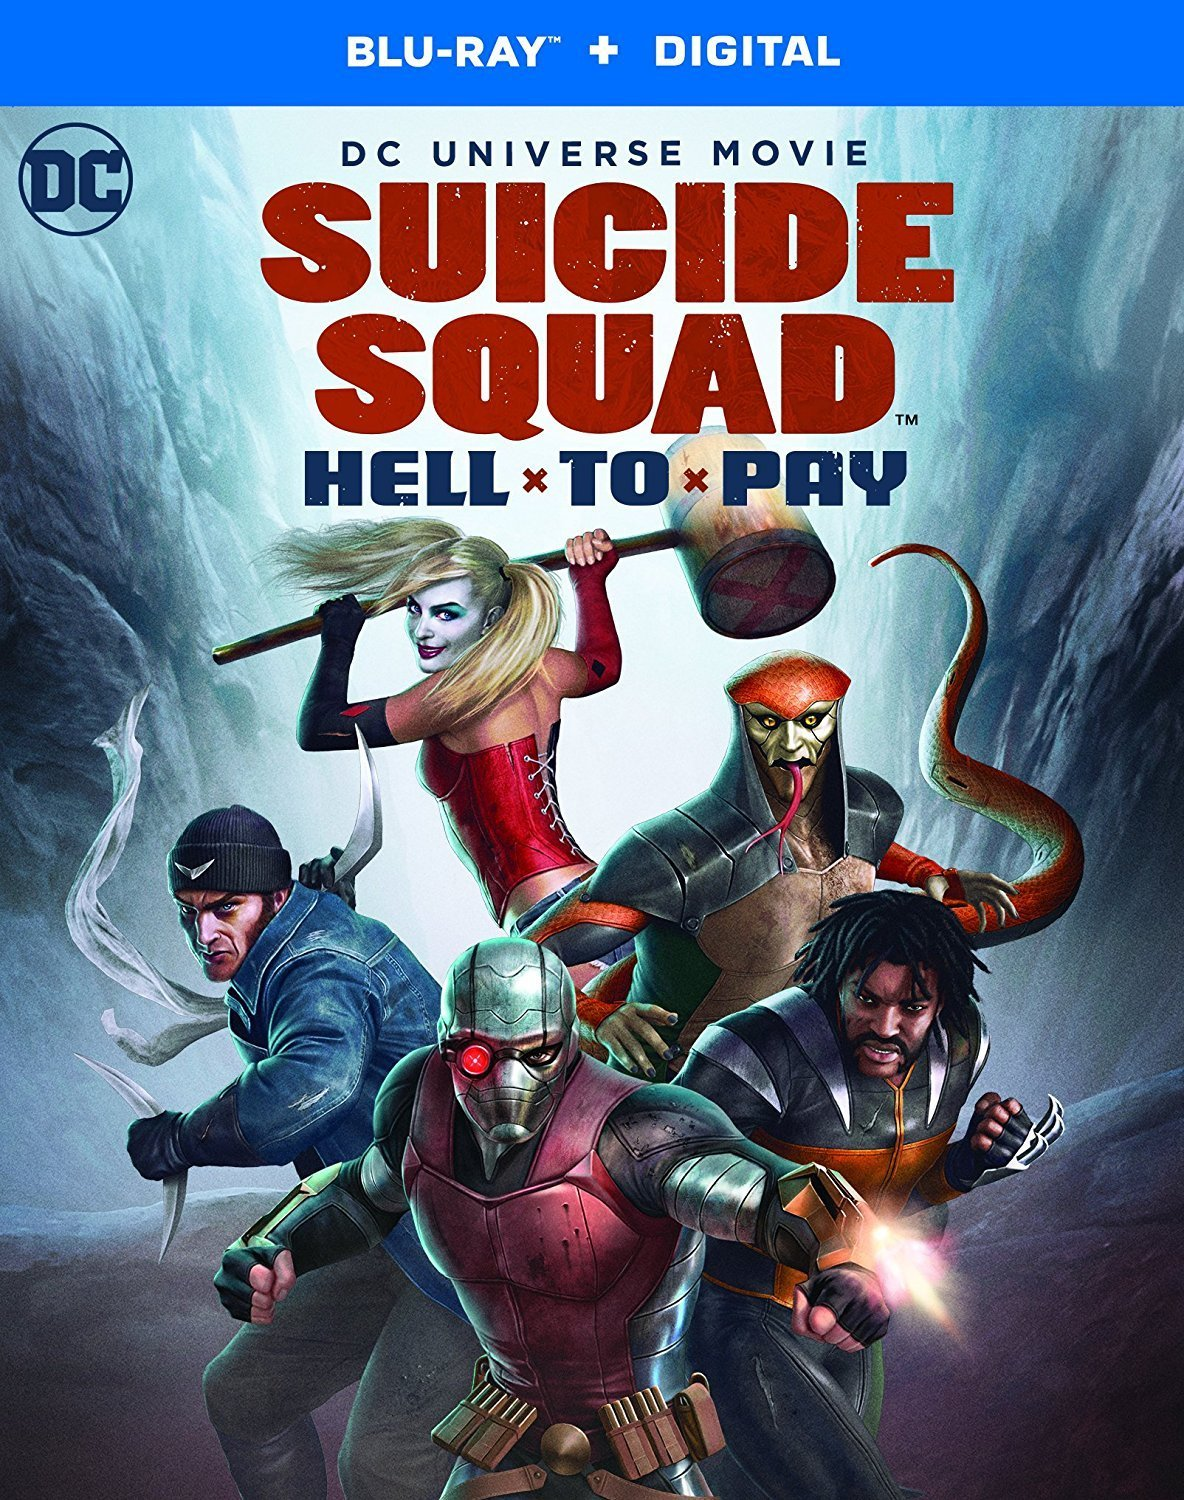 Those that read Blazing Minds will have seen the many DC Universe Movies and Warner Bros. Animation movies, such as Gotham by Gaslight, Batman Vs. Two-Faceand Batman and Harley Quinnthat we have reviewed, now we have news of the release dates forSuicide Squad: Hell To Pay.